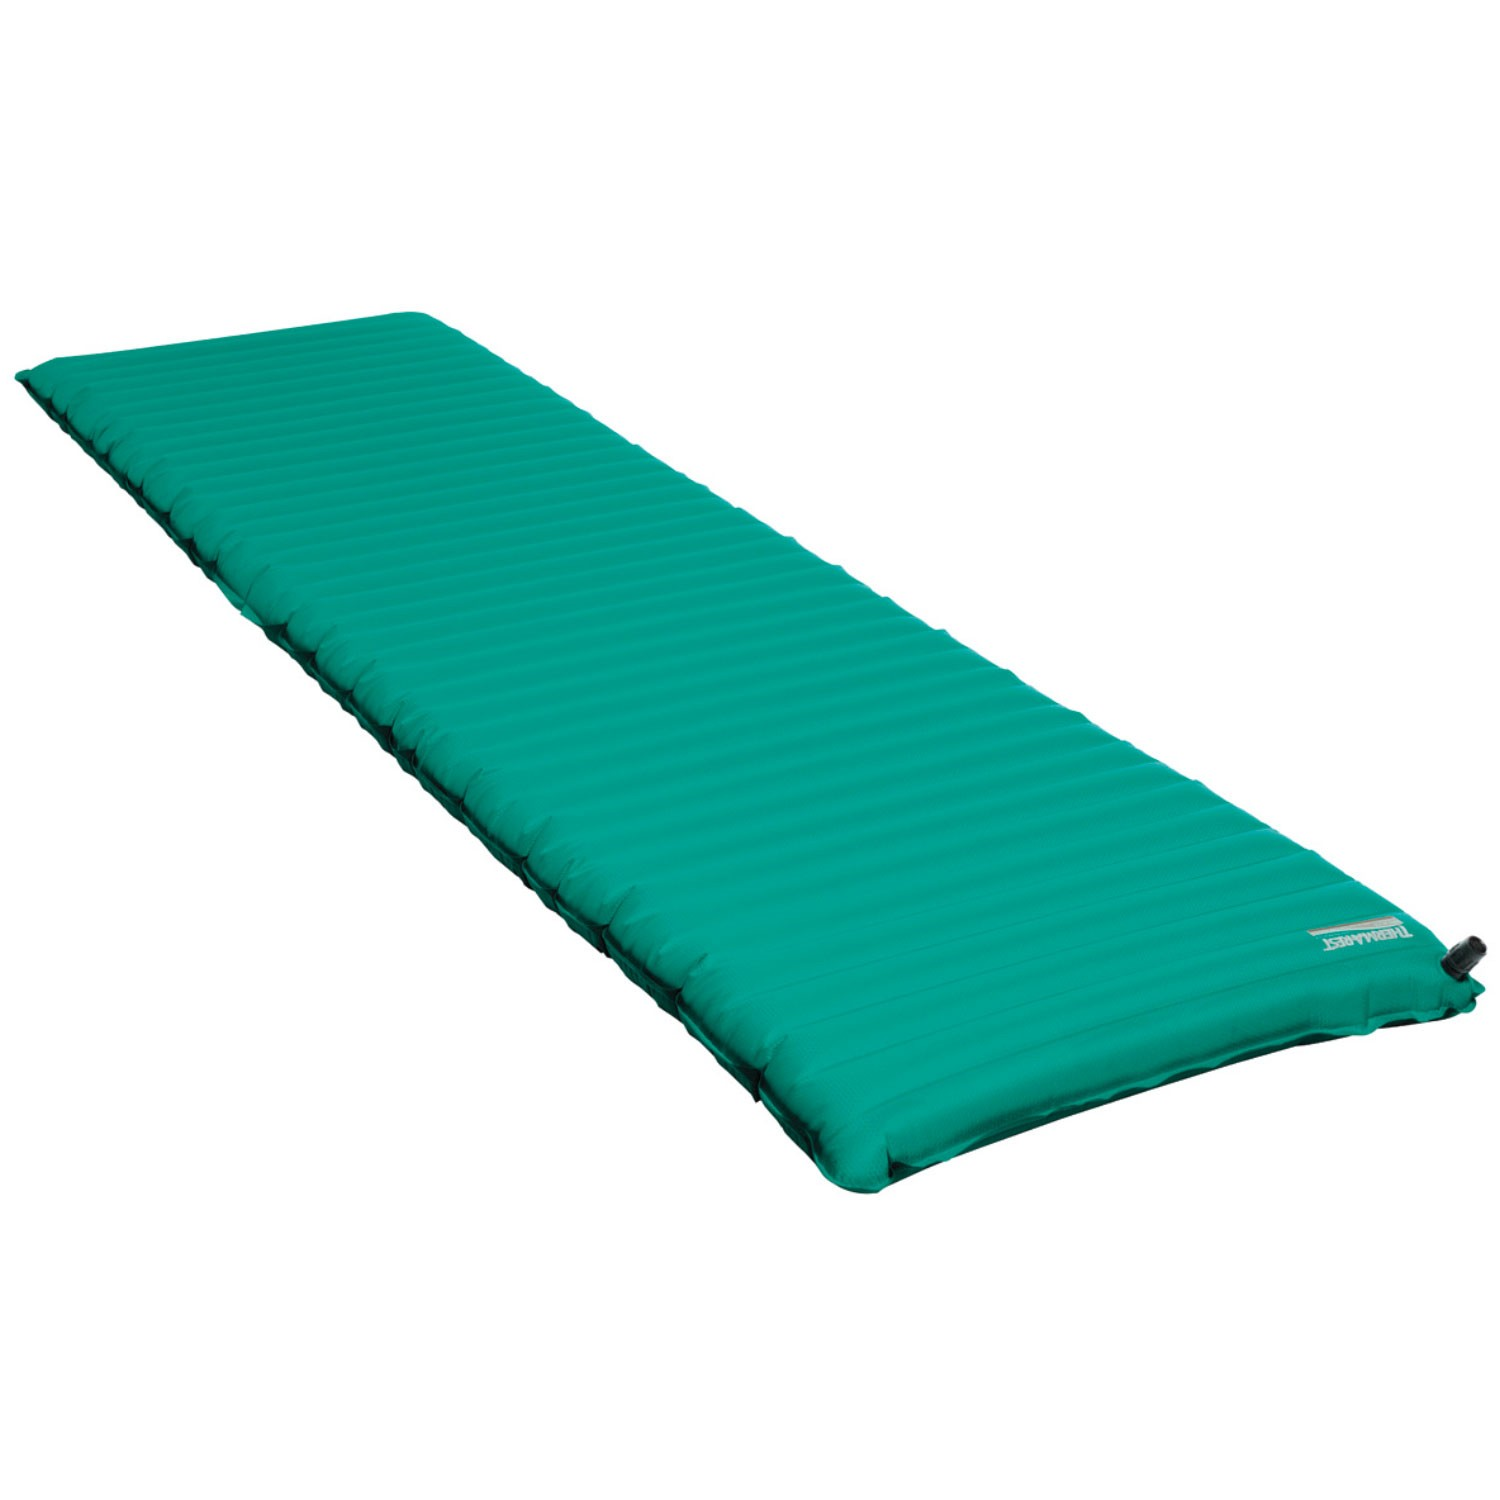 THERMAREST - NeoAir All Season SV Self-Inflating Sleeping Pad